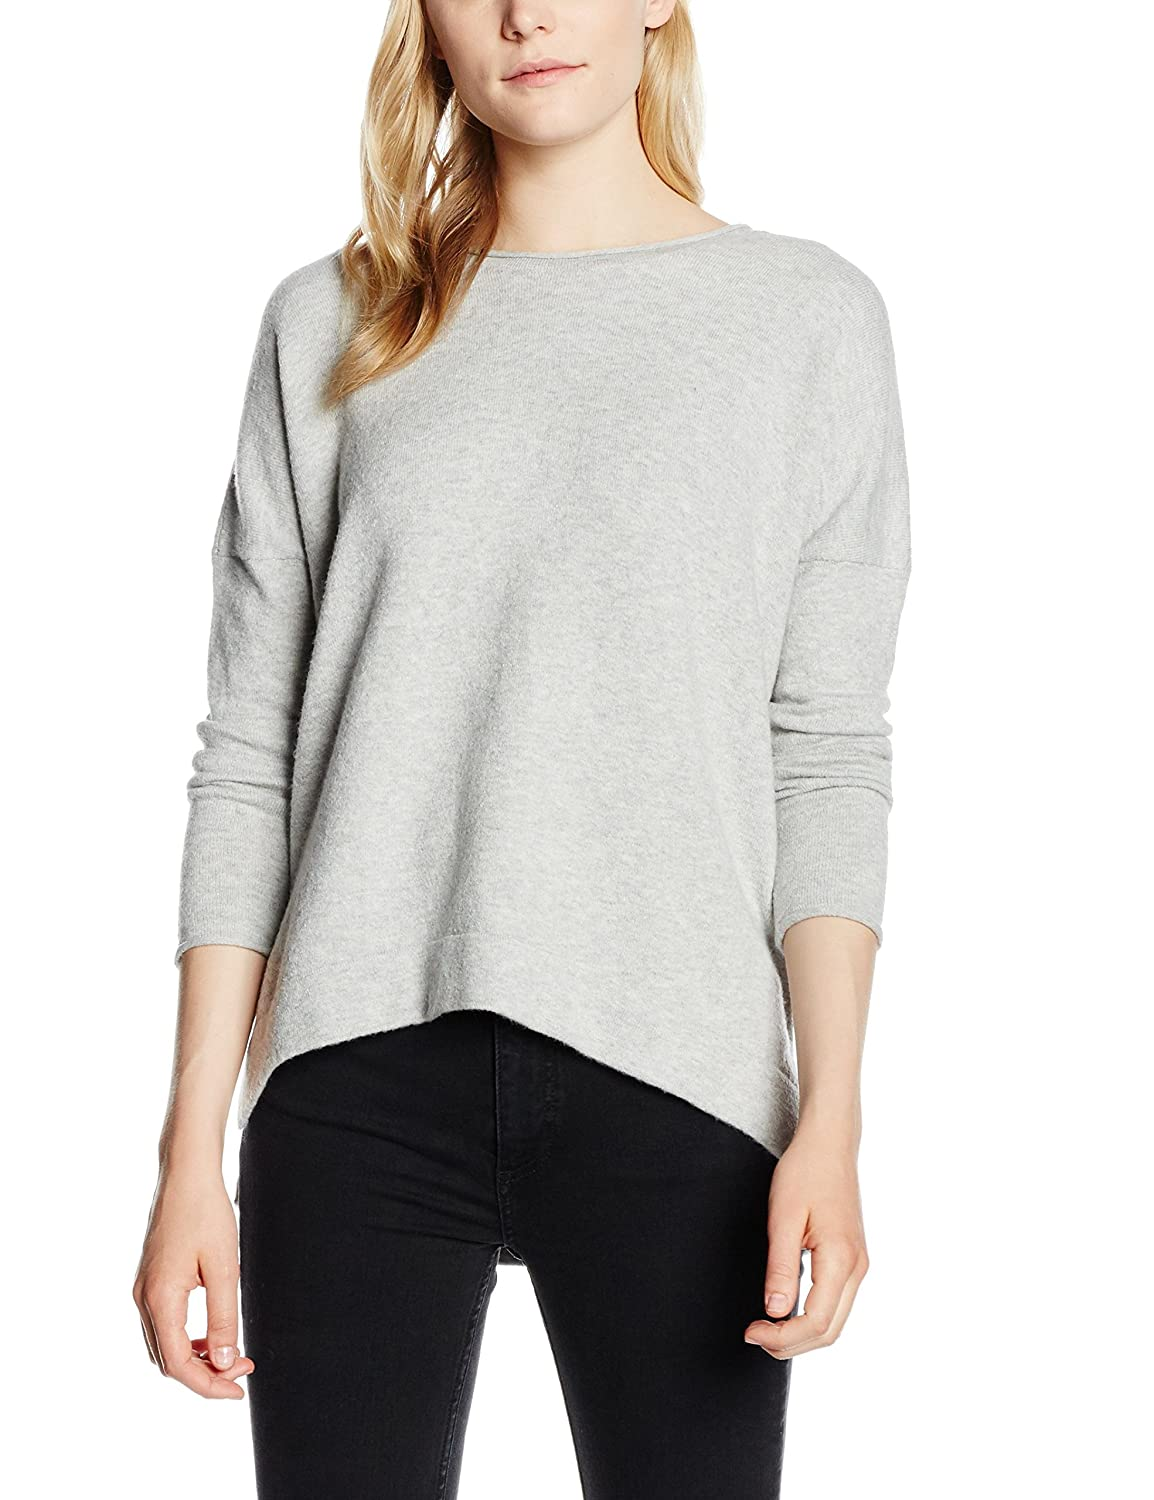 French Connection Damen Pullover Viva Vhari Ls Rdnk Jmpr